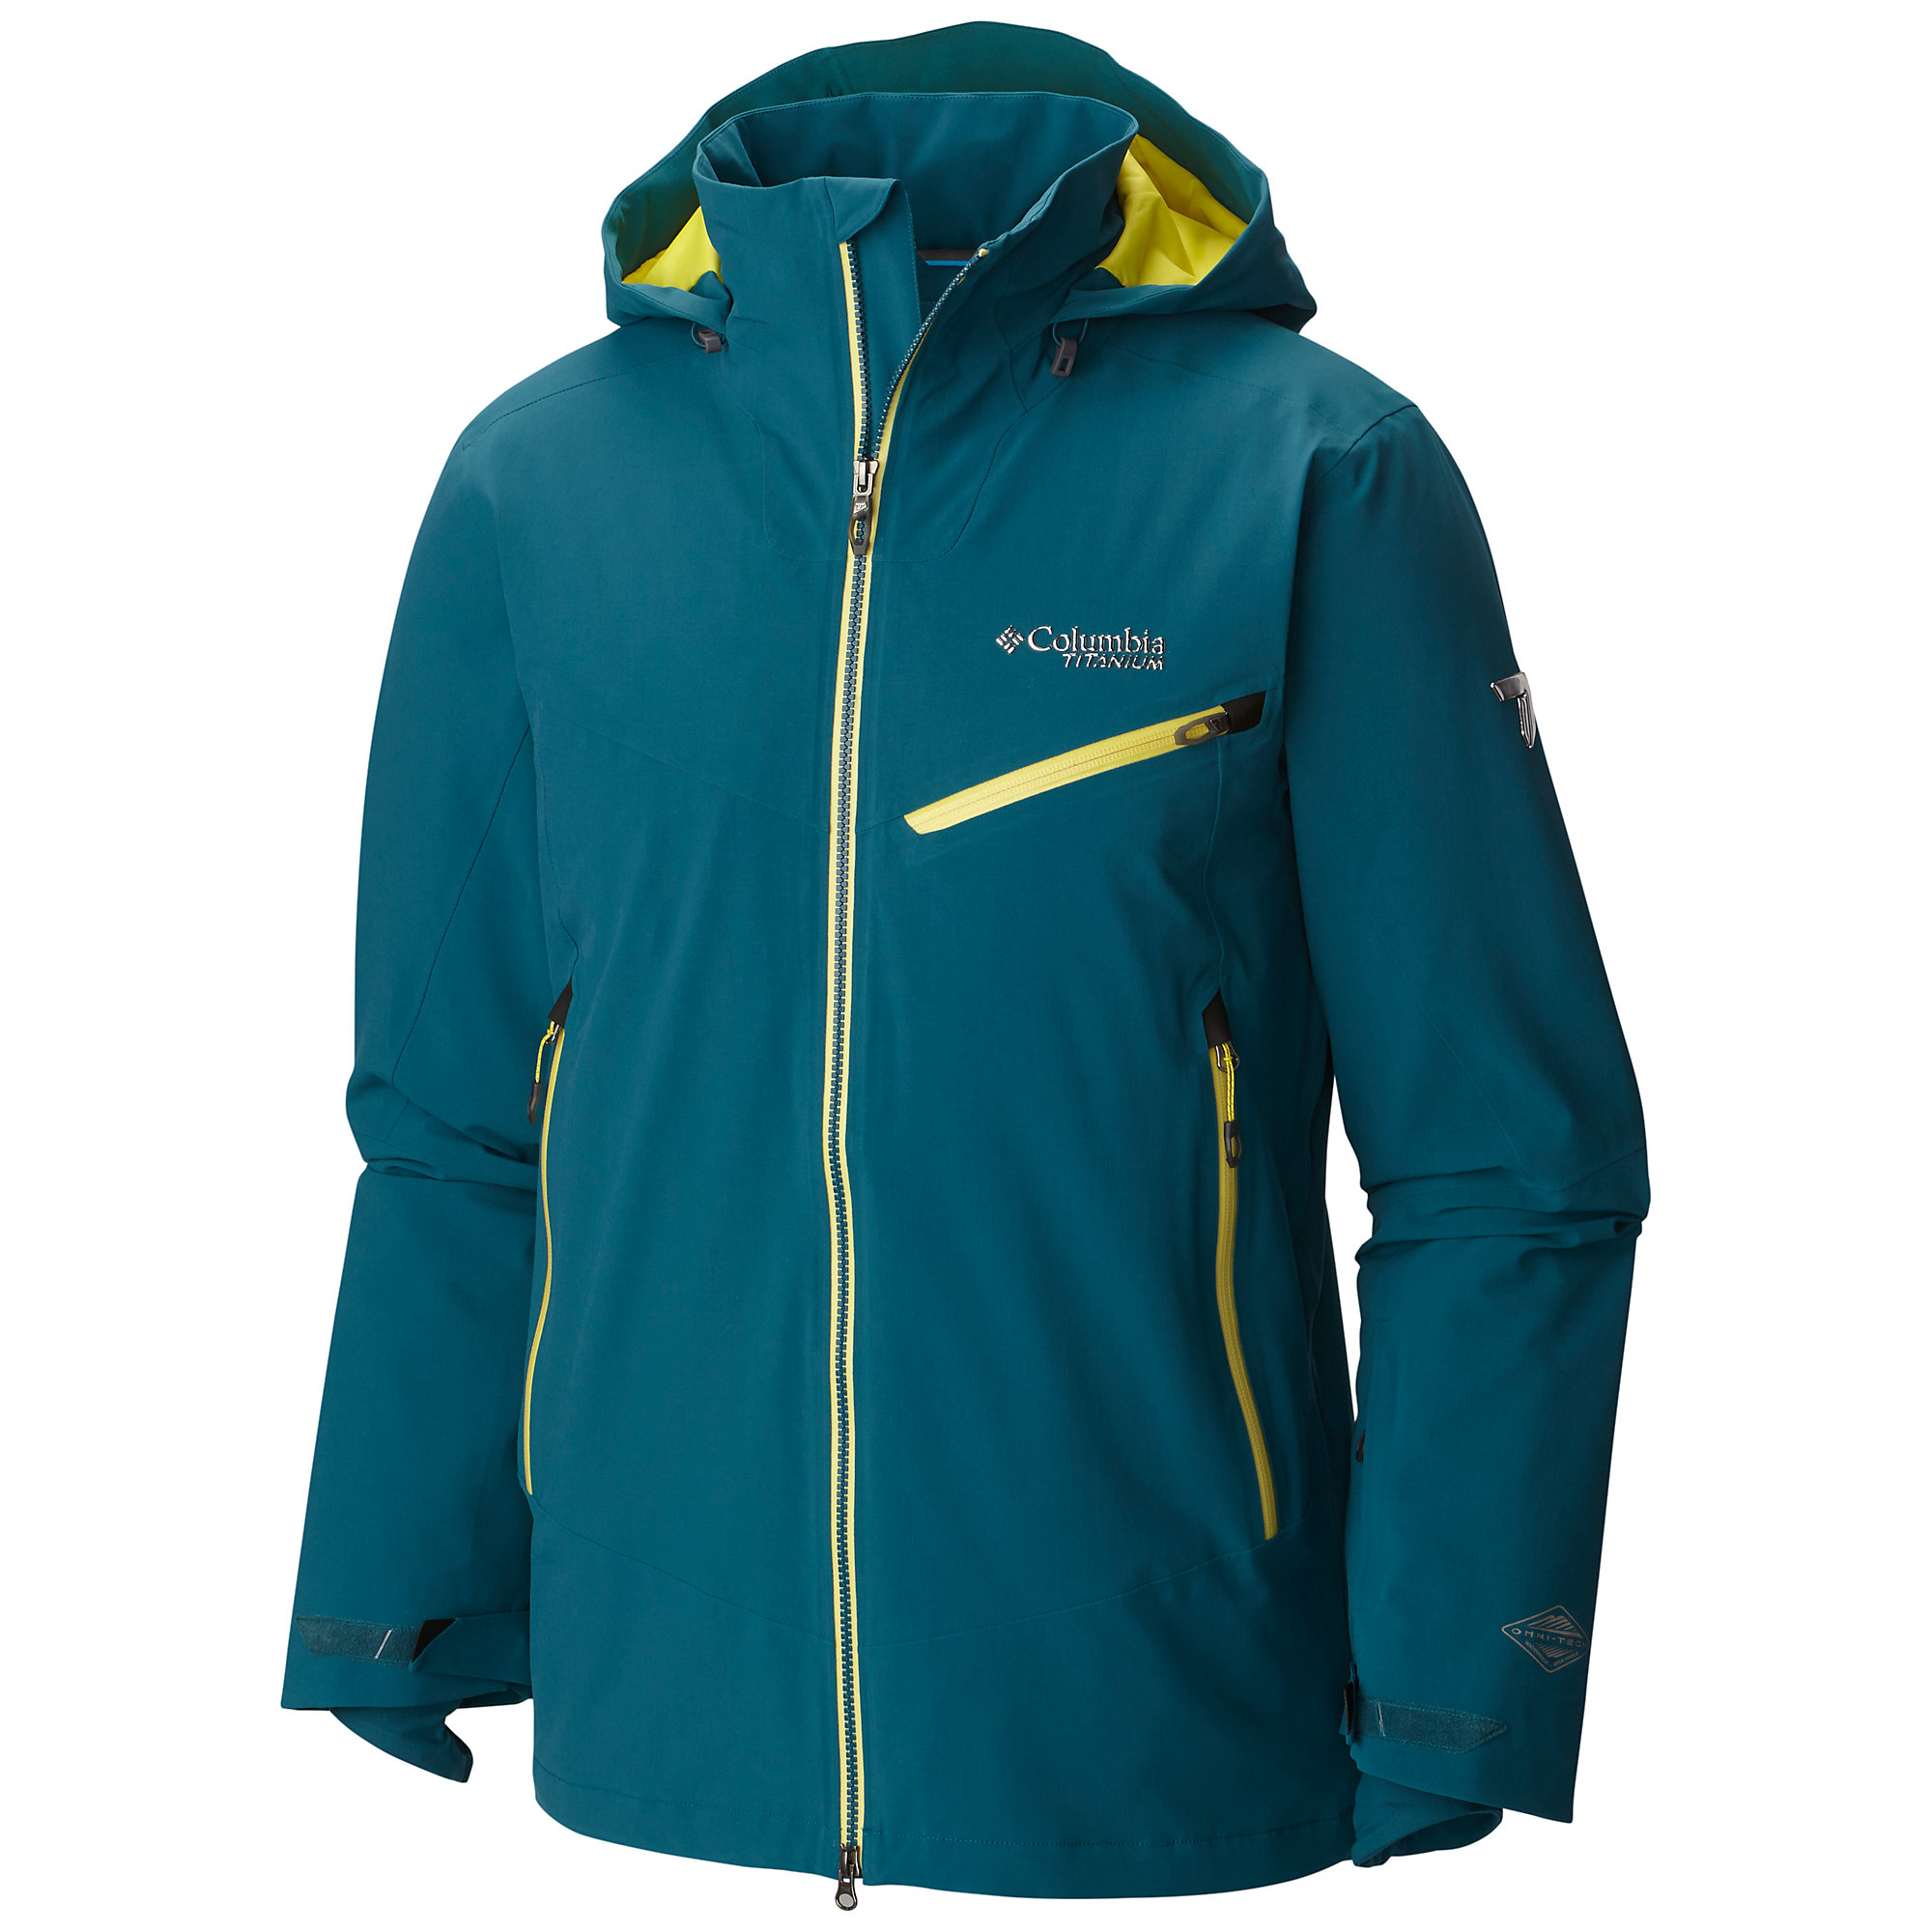 Columbia Carvin' Jacket